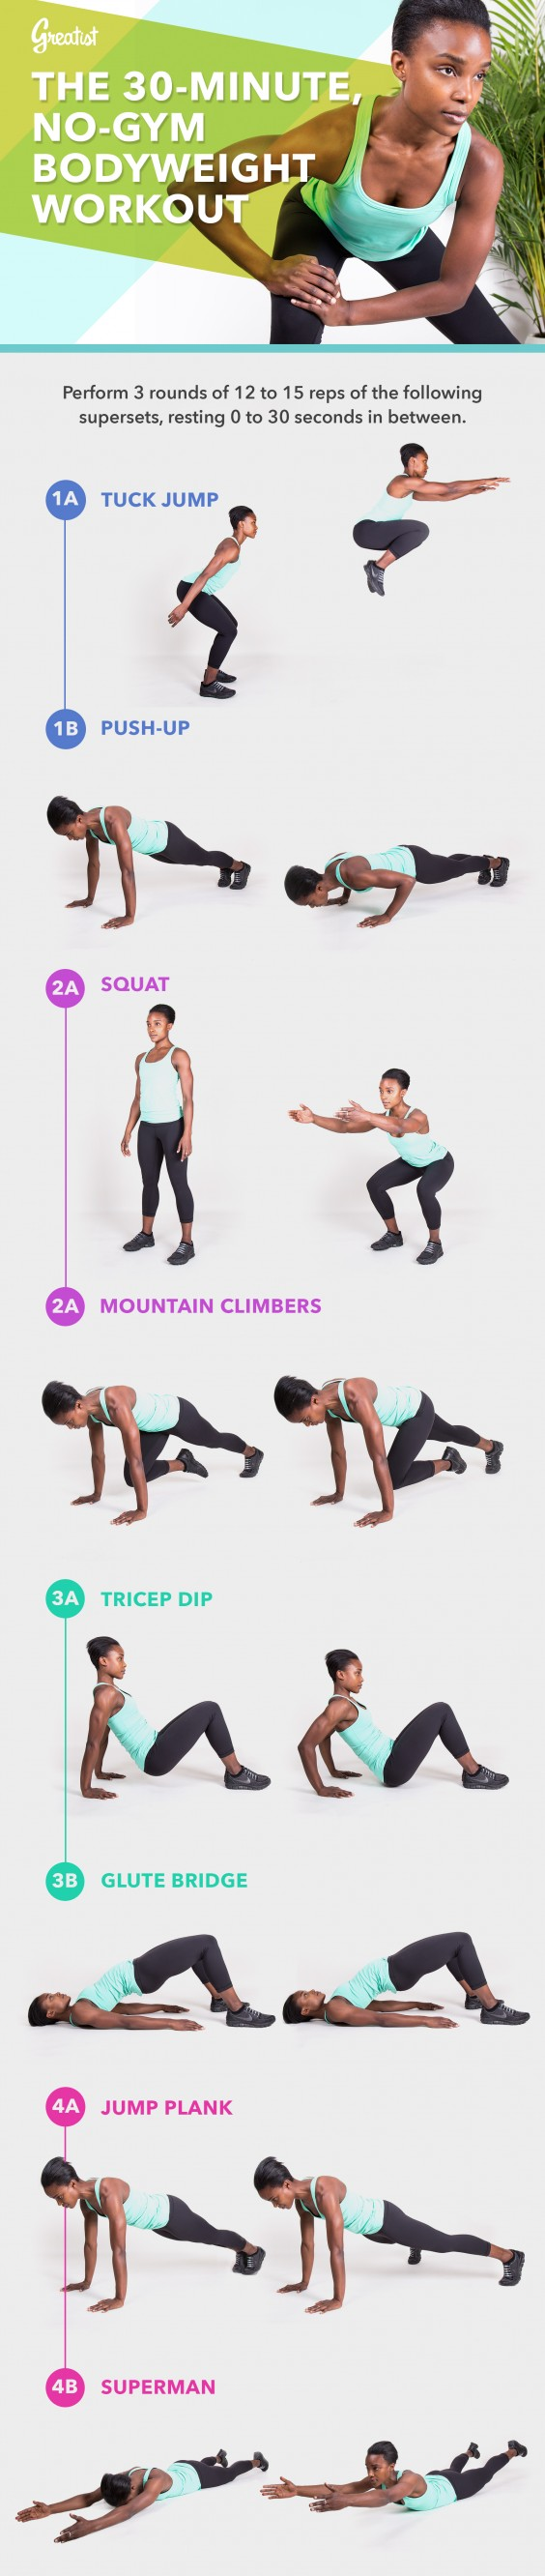 30-Minute, No-Gym Bodyweight Workout